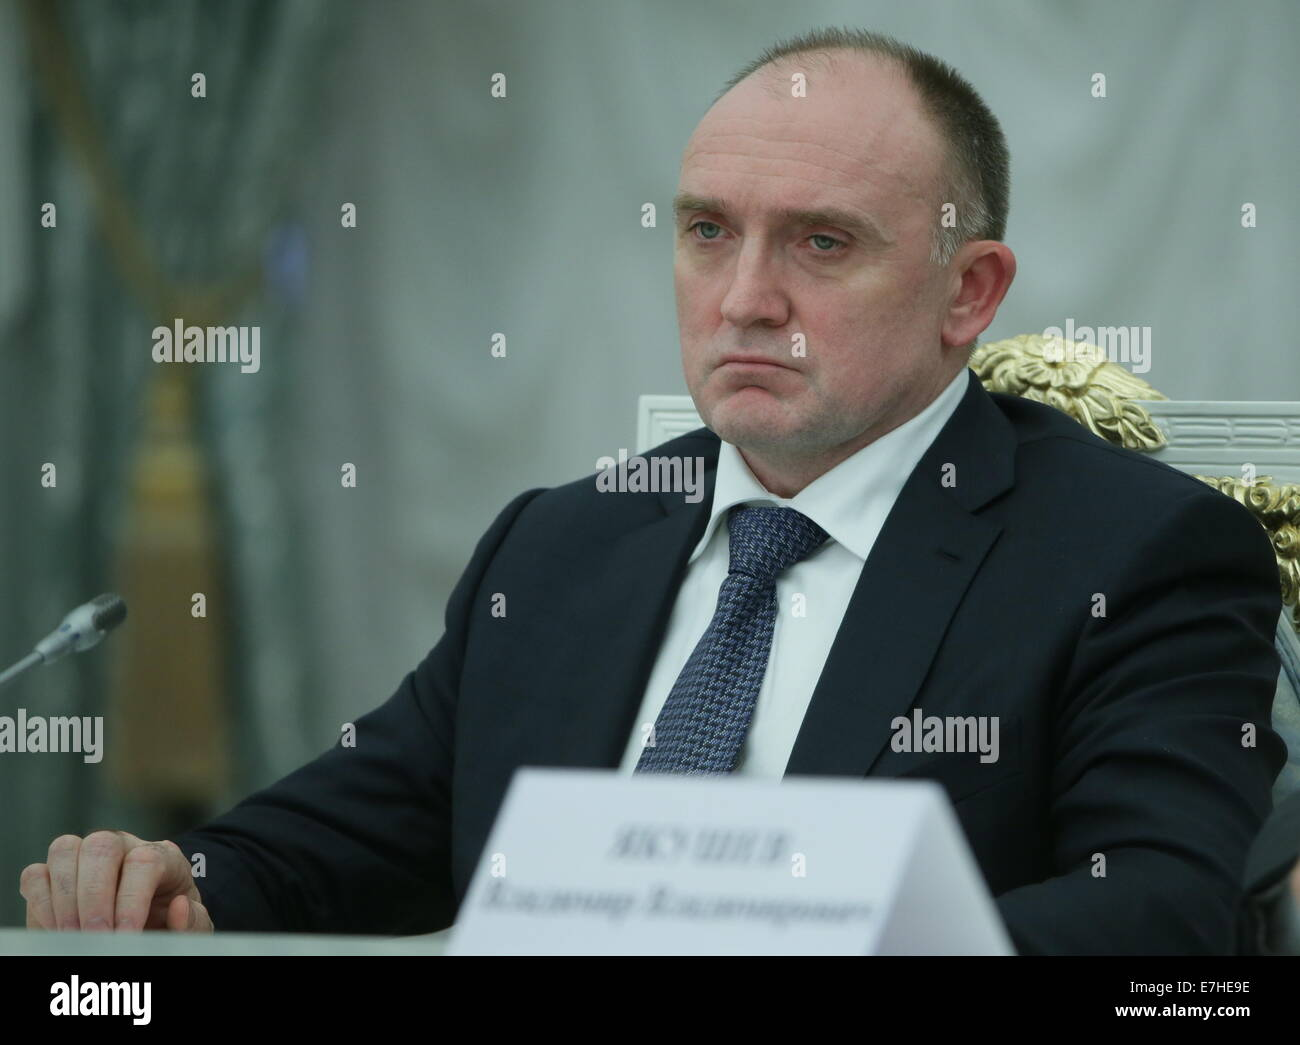 Moscow, Russia. 17th Sep, 2014. Governor elect of Chelyabinsk Region, Boris Dubrovsky at a meeting of Russian president - Stock Image